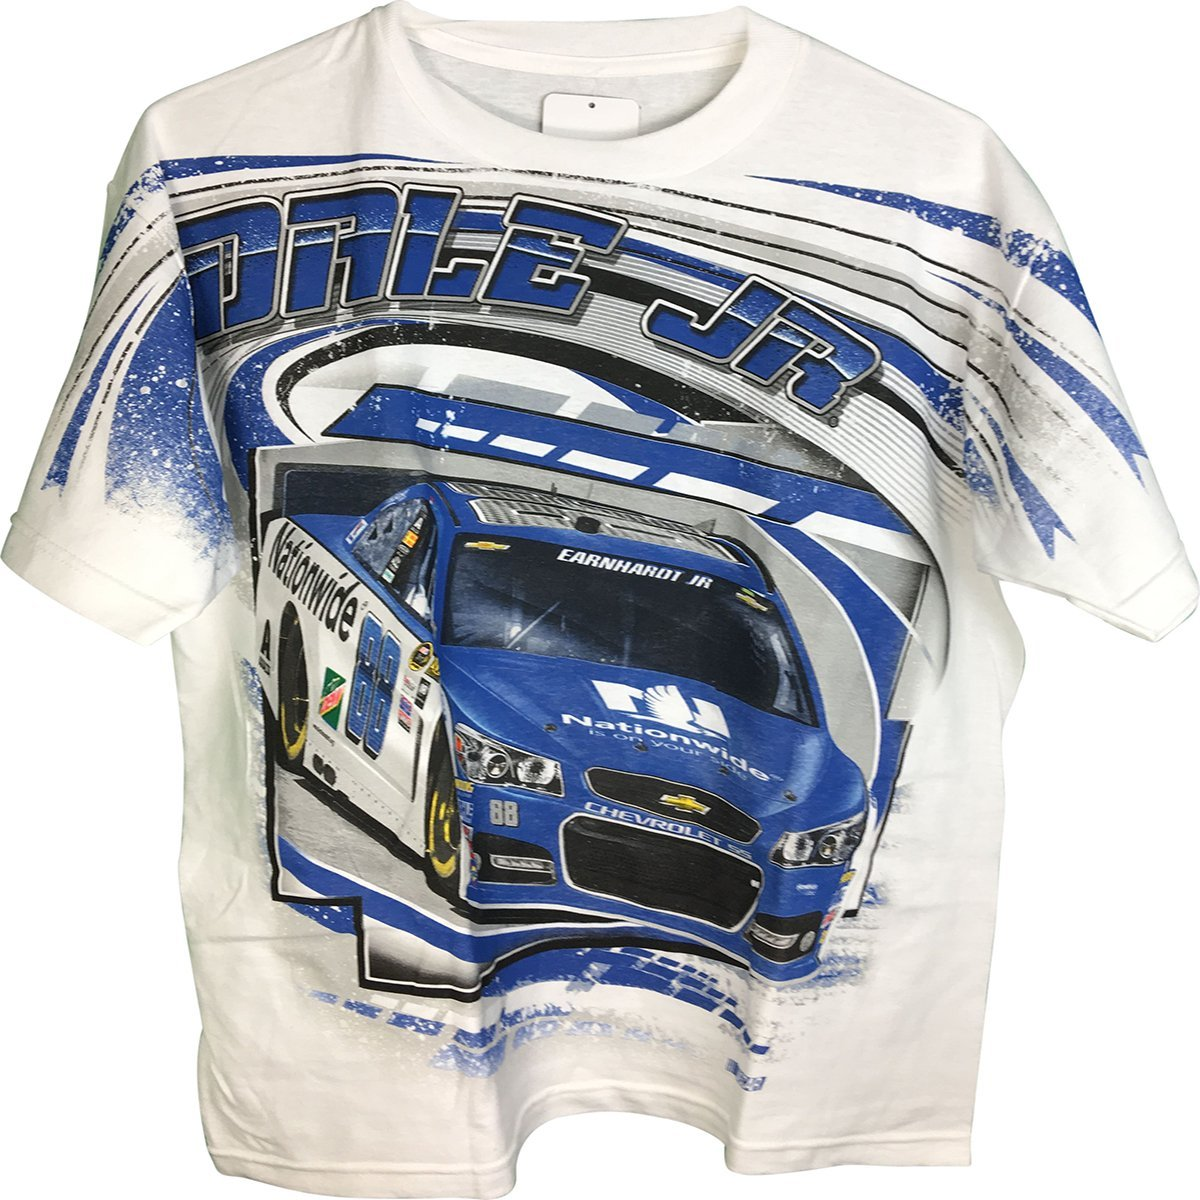 Dale Earnhardt Jr #88 Nationwide Total Print All Over Design Adult Men's T-Shirt (2X) by Checkered Flag